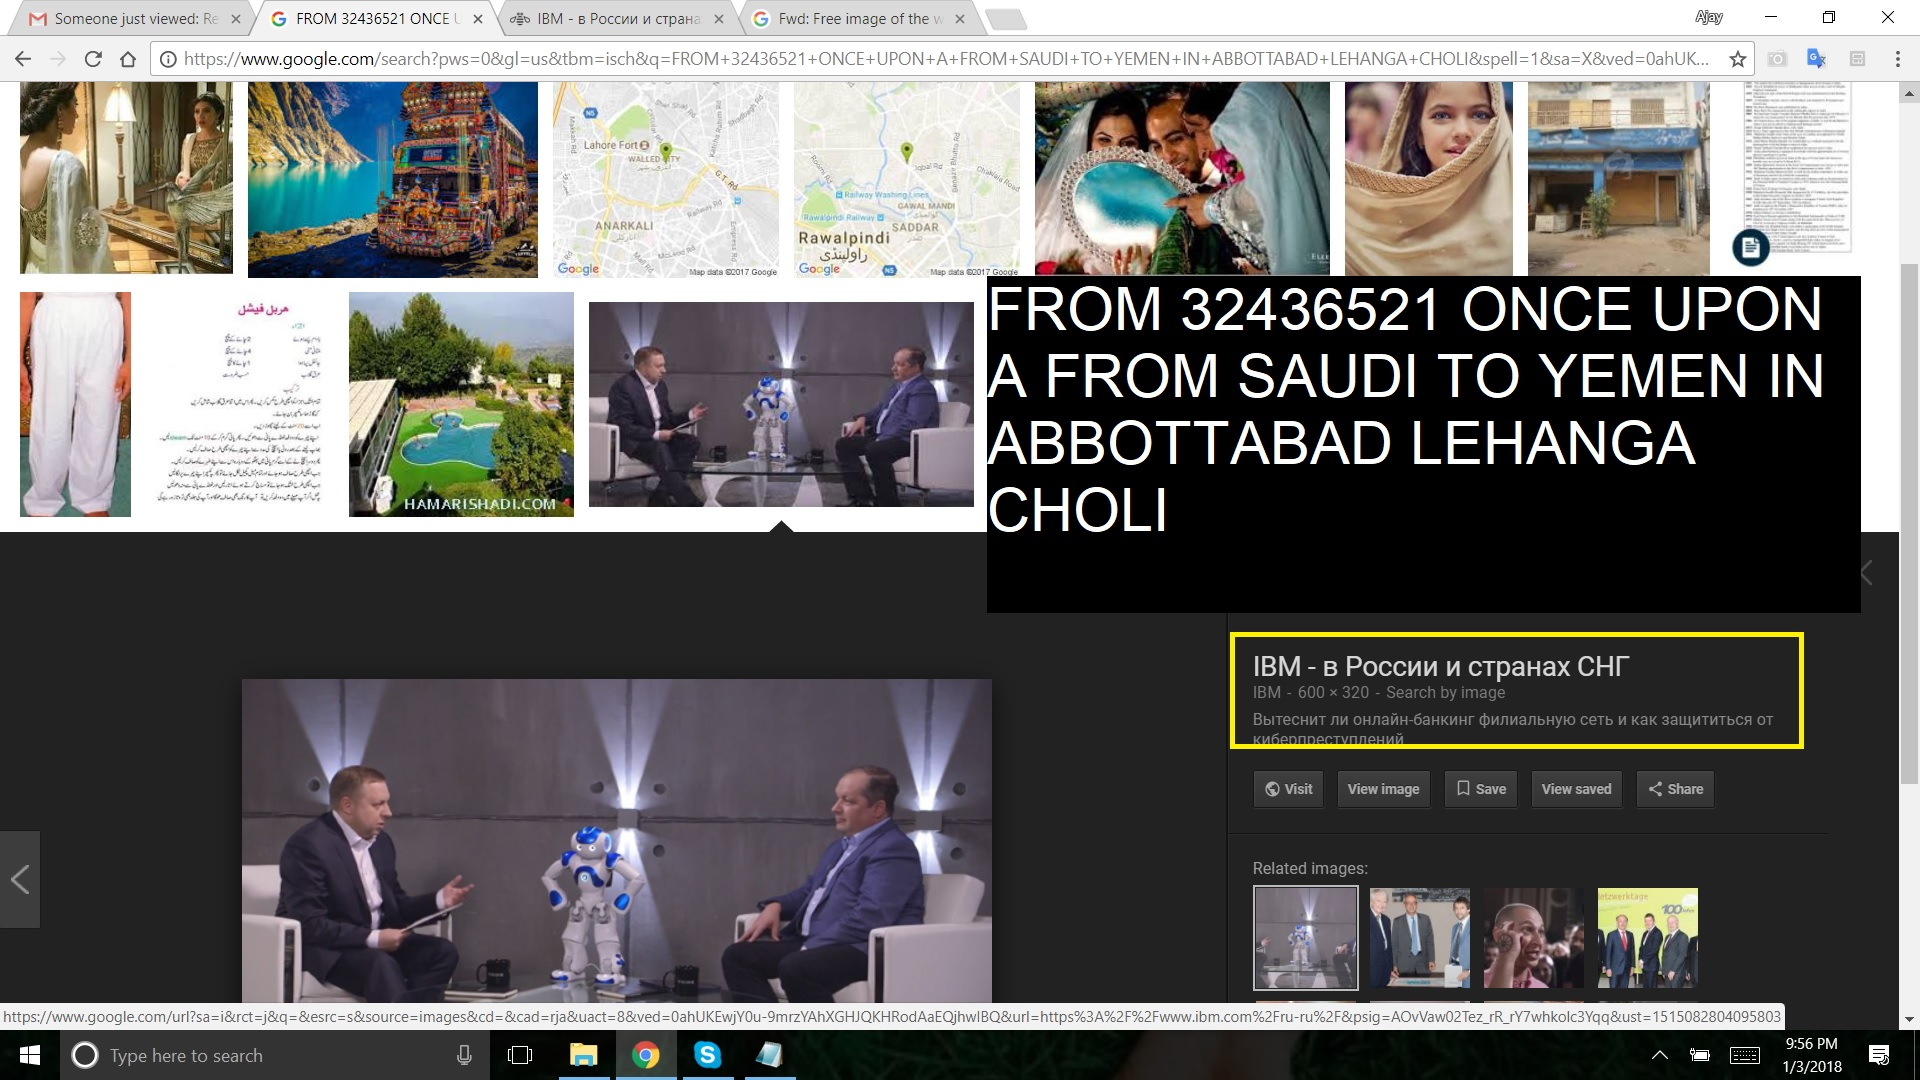 FROM 32436521 ONCE UPON A FROM SAUDI TO YEMEN IN ABBOTTABAD LEHANGA CHOLI - BTW IS U THERE - U KNOW IBM AND BUS LINES AND HAIFA AND NOR - YEAH SO IBM IS GLOBAL DID ME SAY